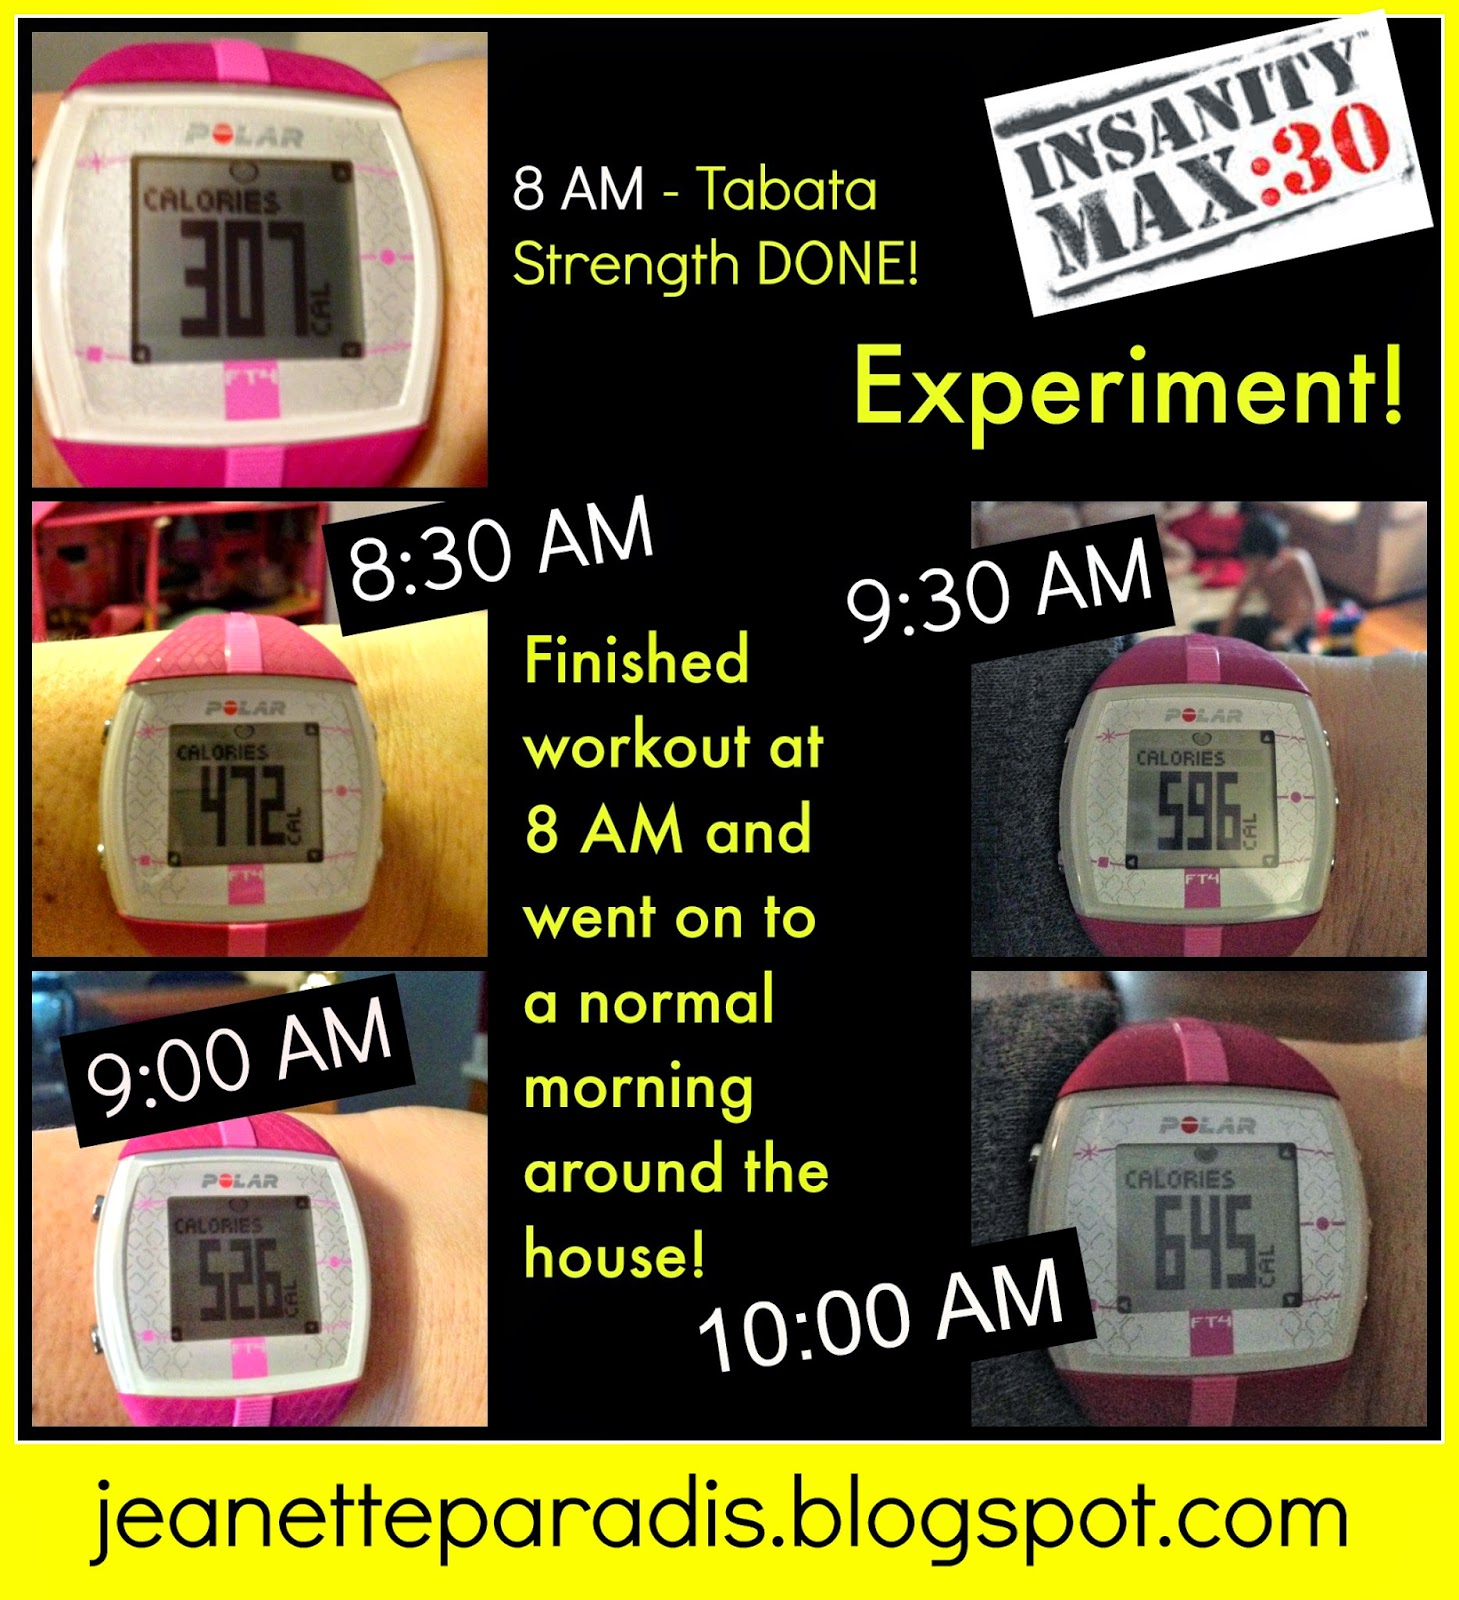 Kitchen Window: Insanity Max 30 - Actual Calories Burned??